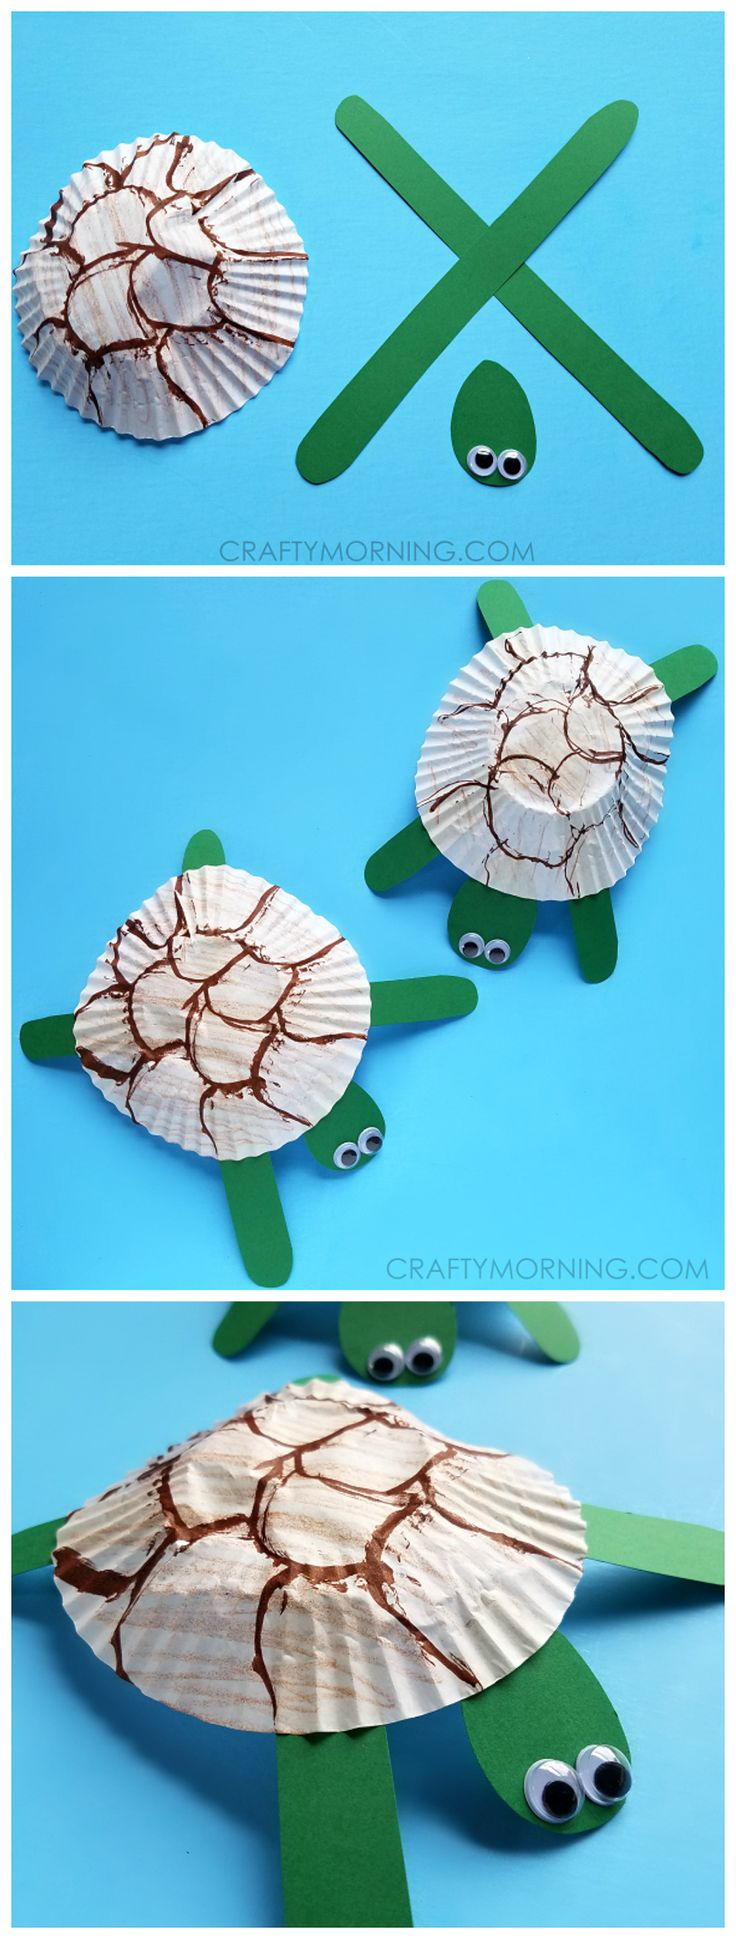 Glue on googly eyes and you have the cutest turtles around!